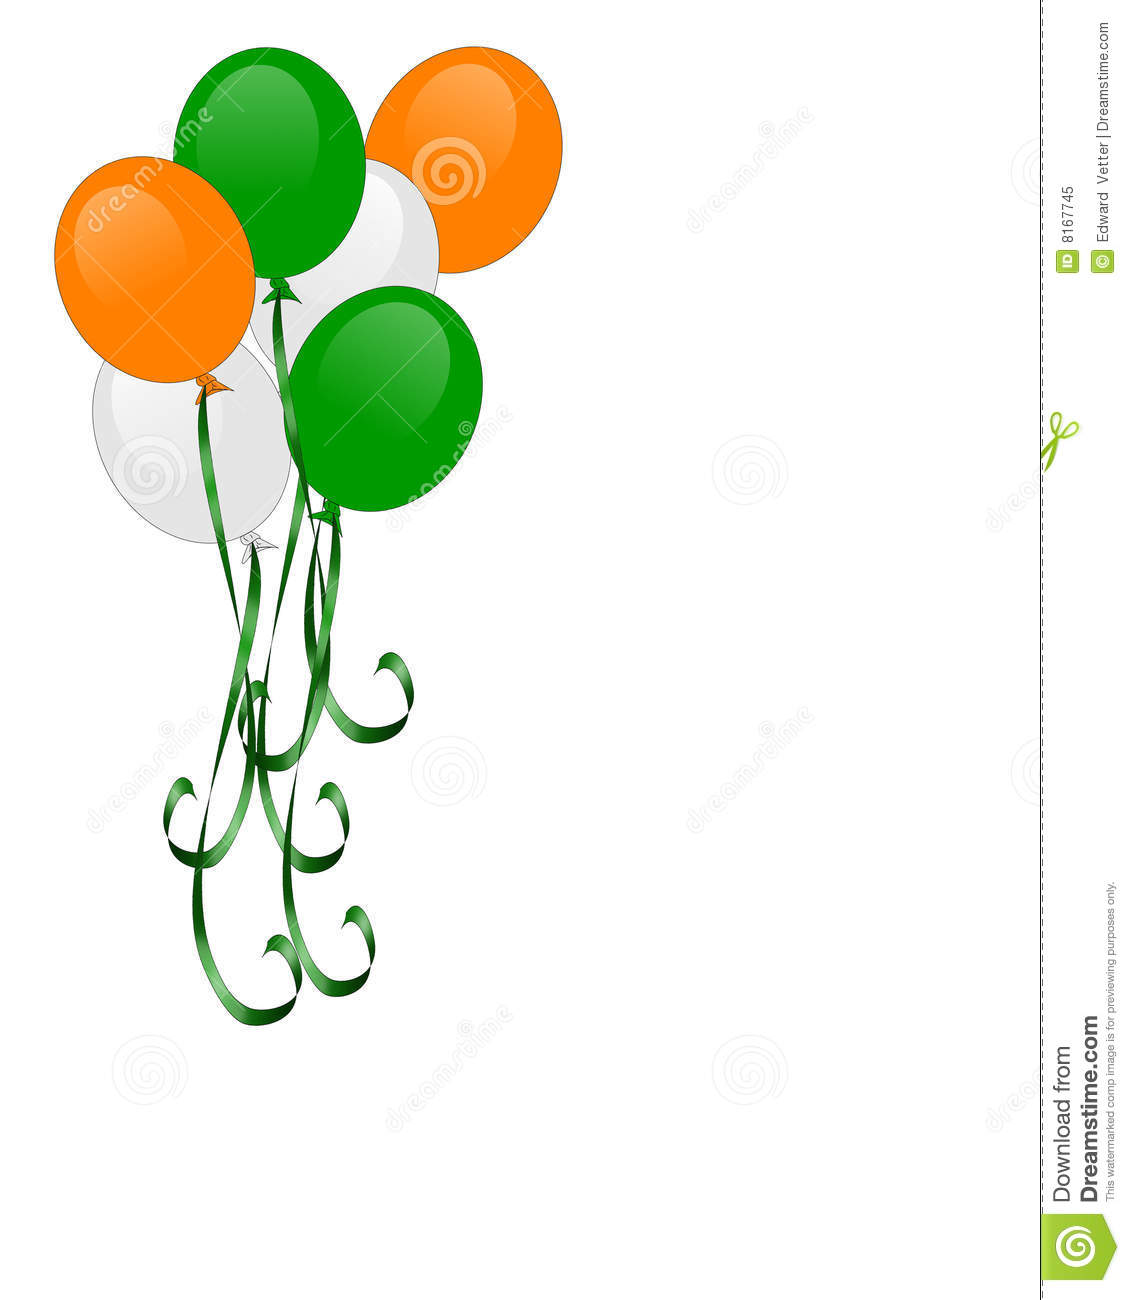 1130x1300 Balloon Clipart St Patricks Day